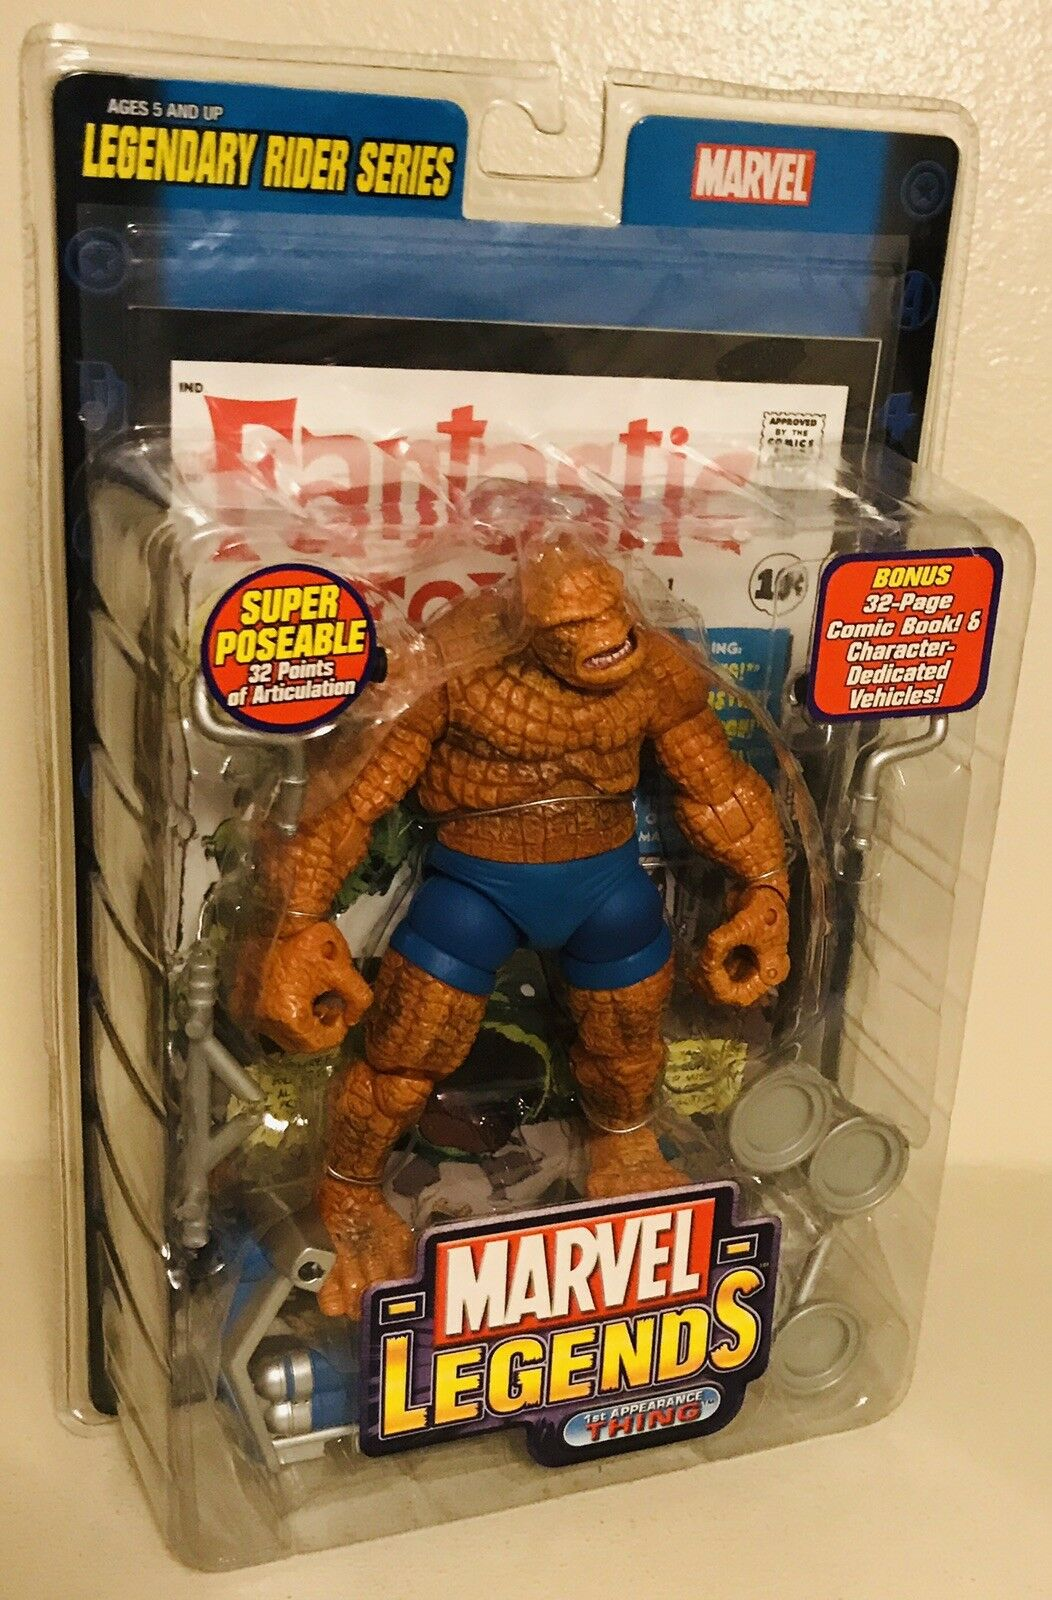 New Marvel Legends Legendary Rider Series 1st Appearance The Thing Toy Biz 32pts